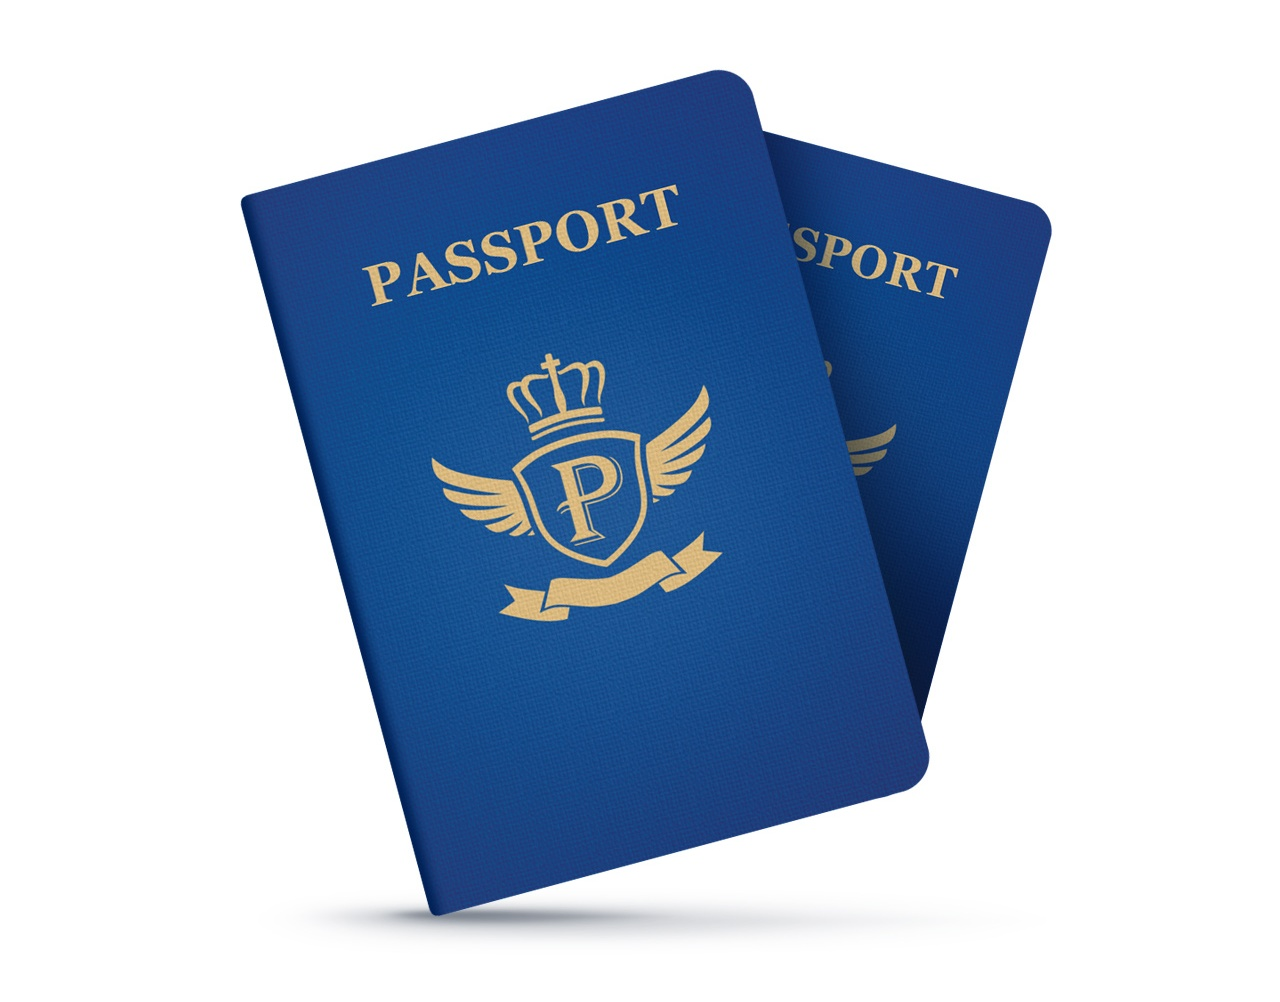 Passaport clipart vector royalty free Passport clipart free images 2 – Gclipart.com vector royalty free